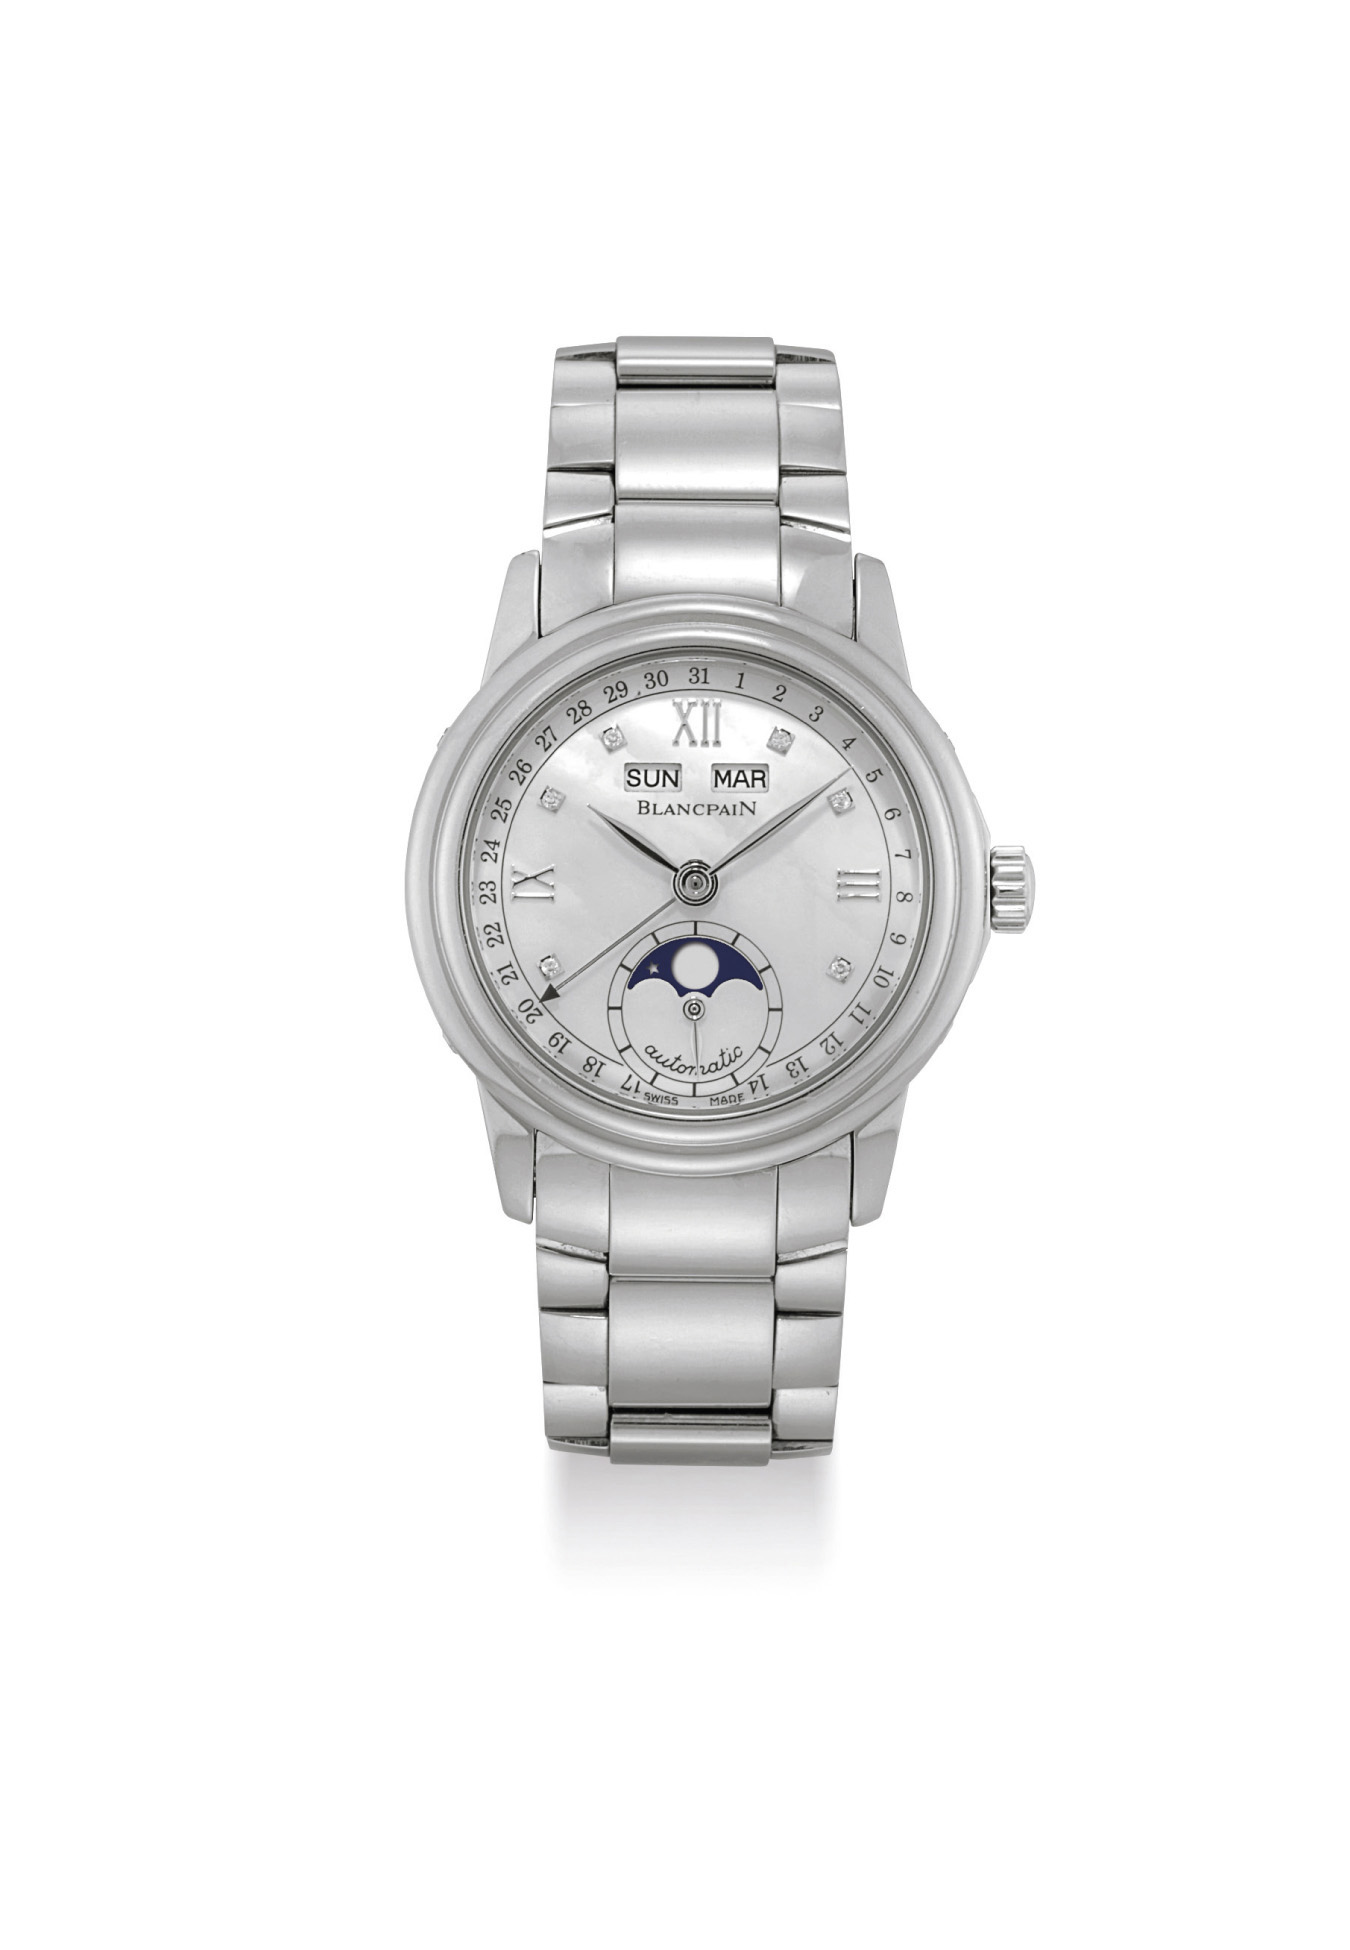 BLANCPAIN. A LADY'S STAINLESS